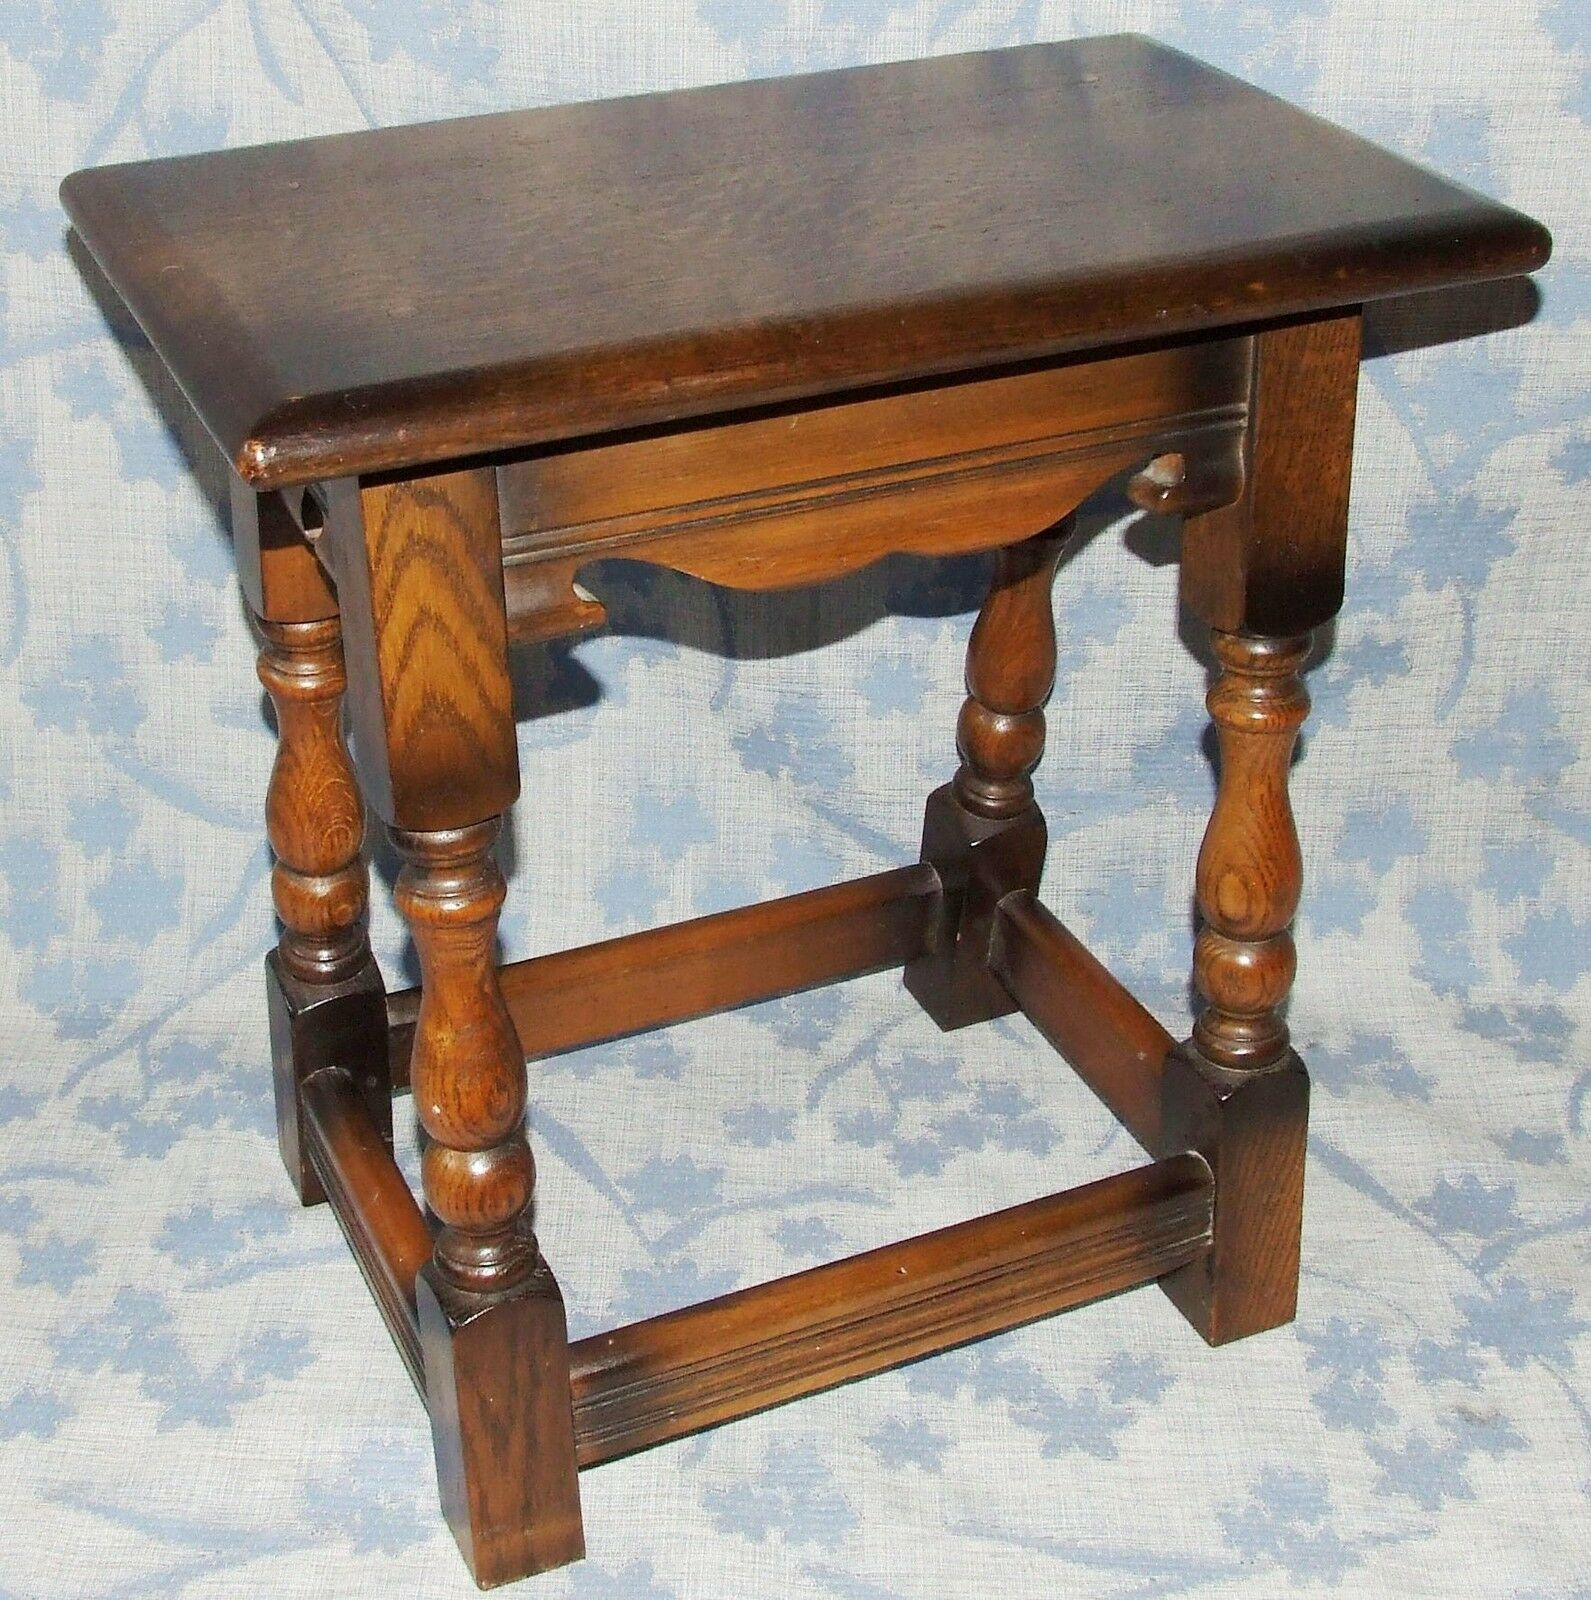 Antique Style Oak Joint Stool Table / Lamp Stand / Occasional Coffee Table (2)